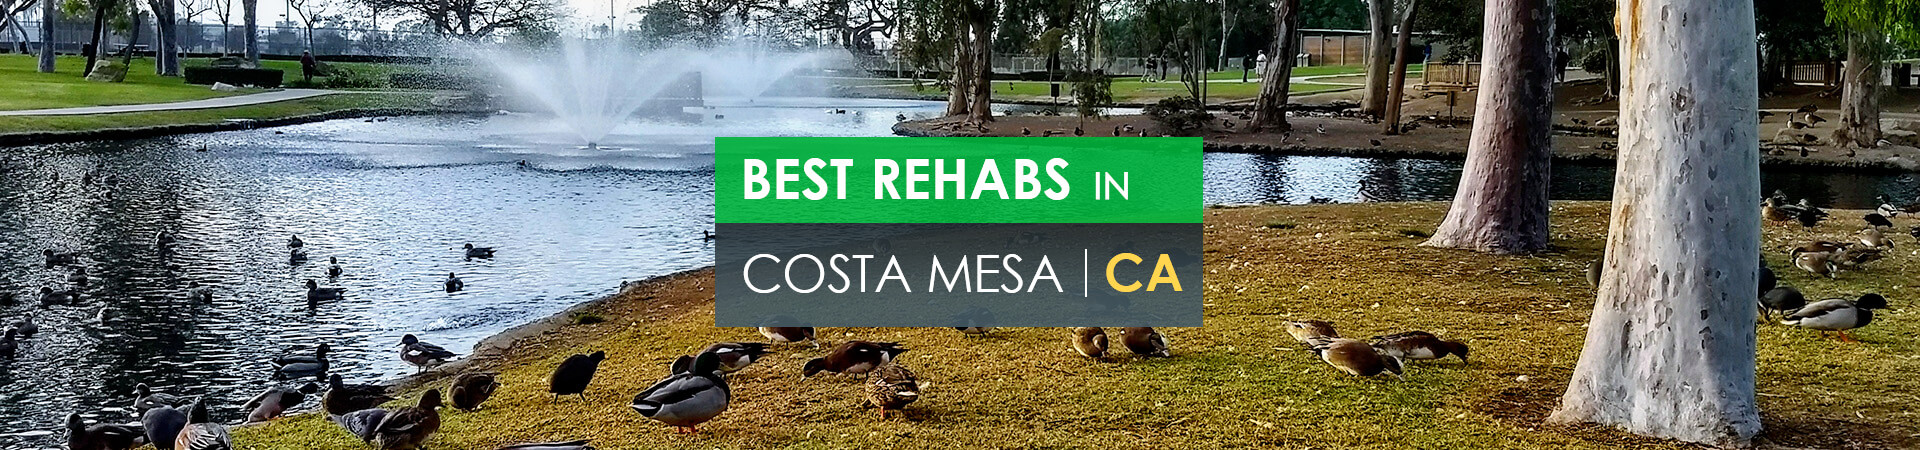 Best rehabs in Costa Mesa, CA